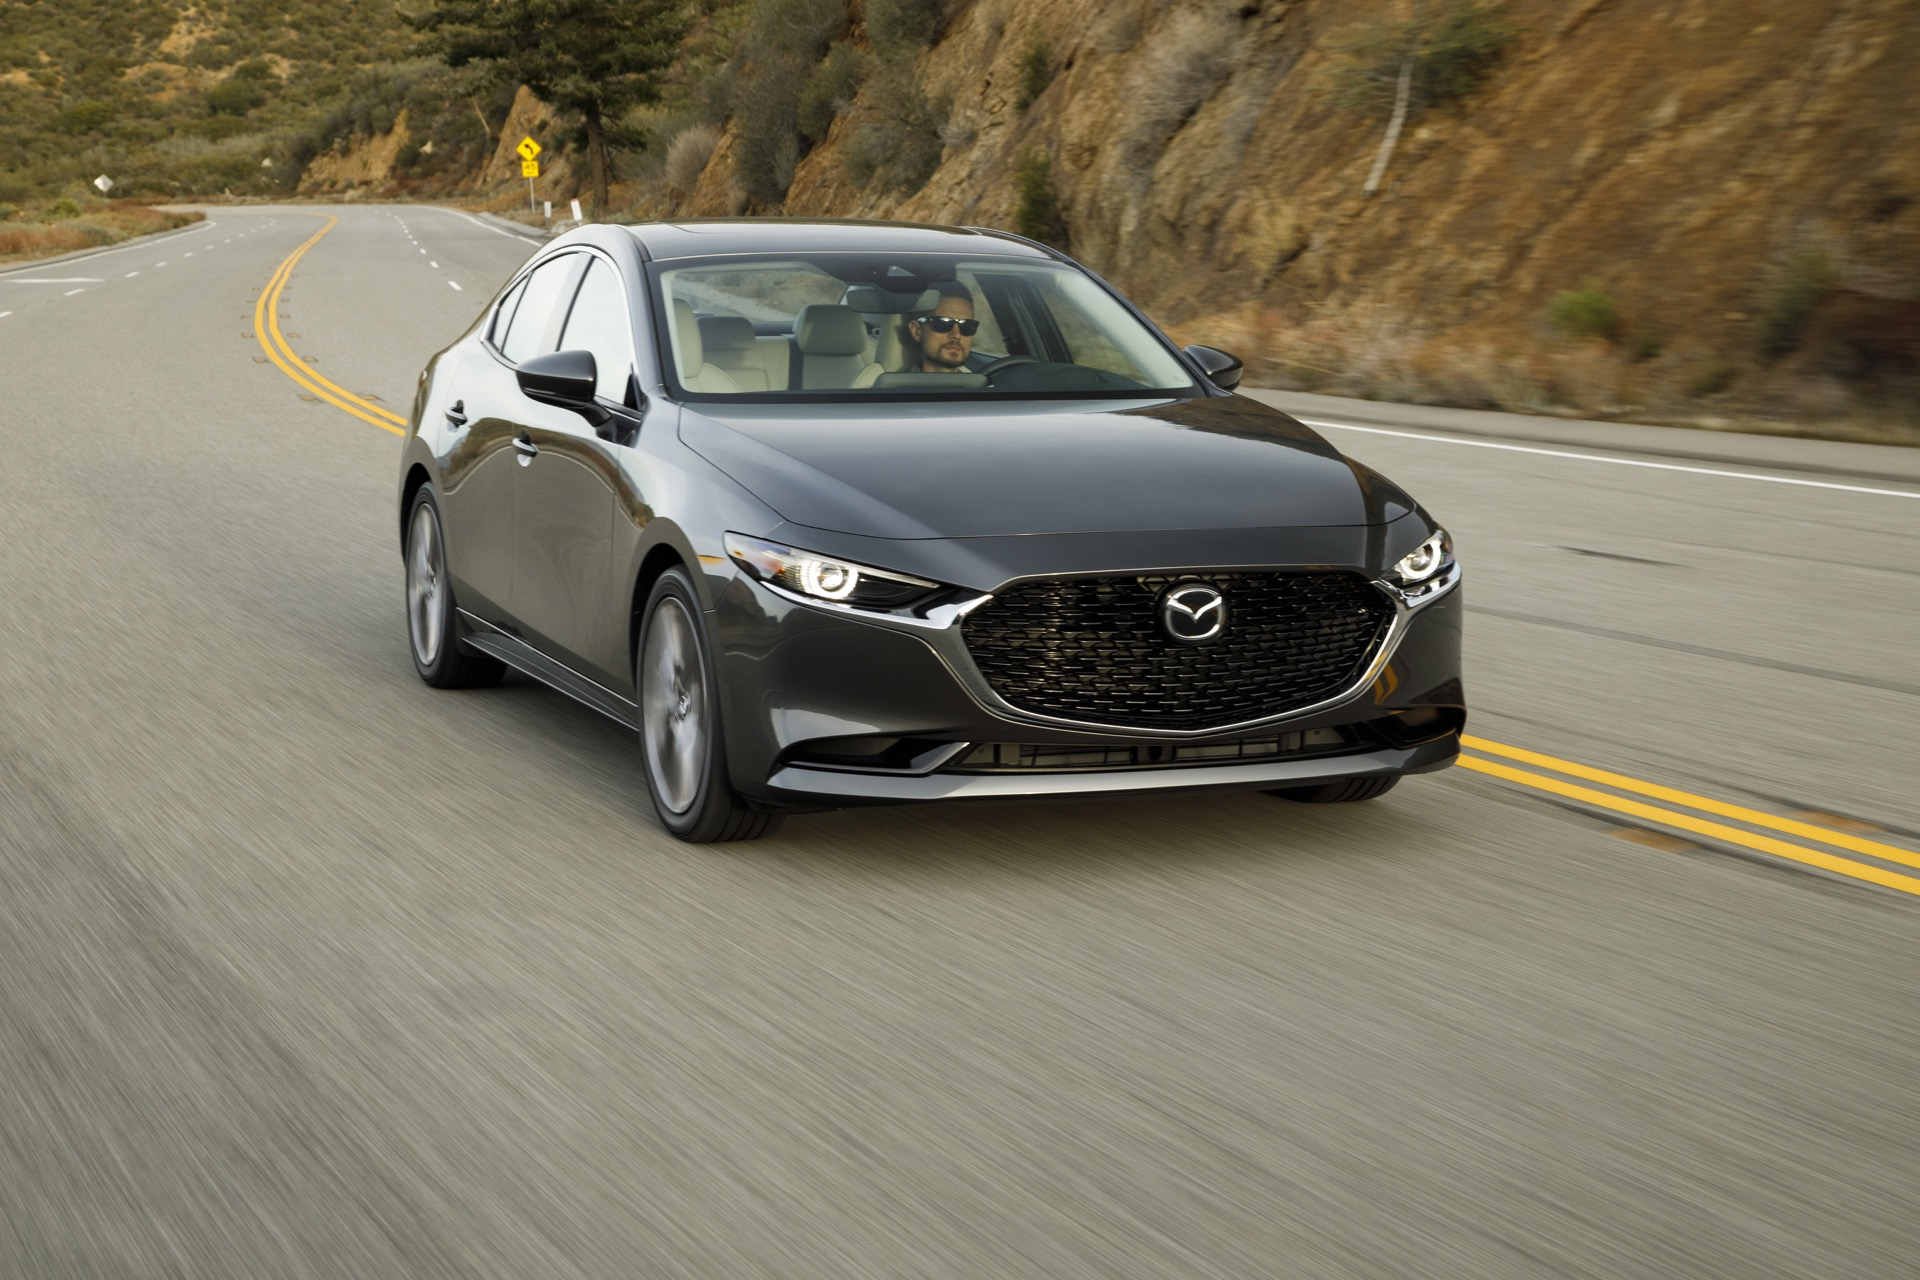 More than 25K 2019 Mazda 3s recalled for potentially loose wheel nuts